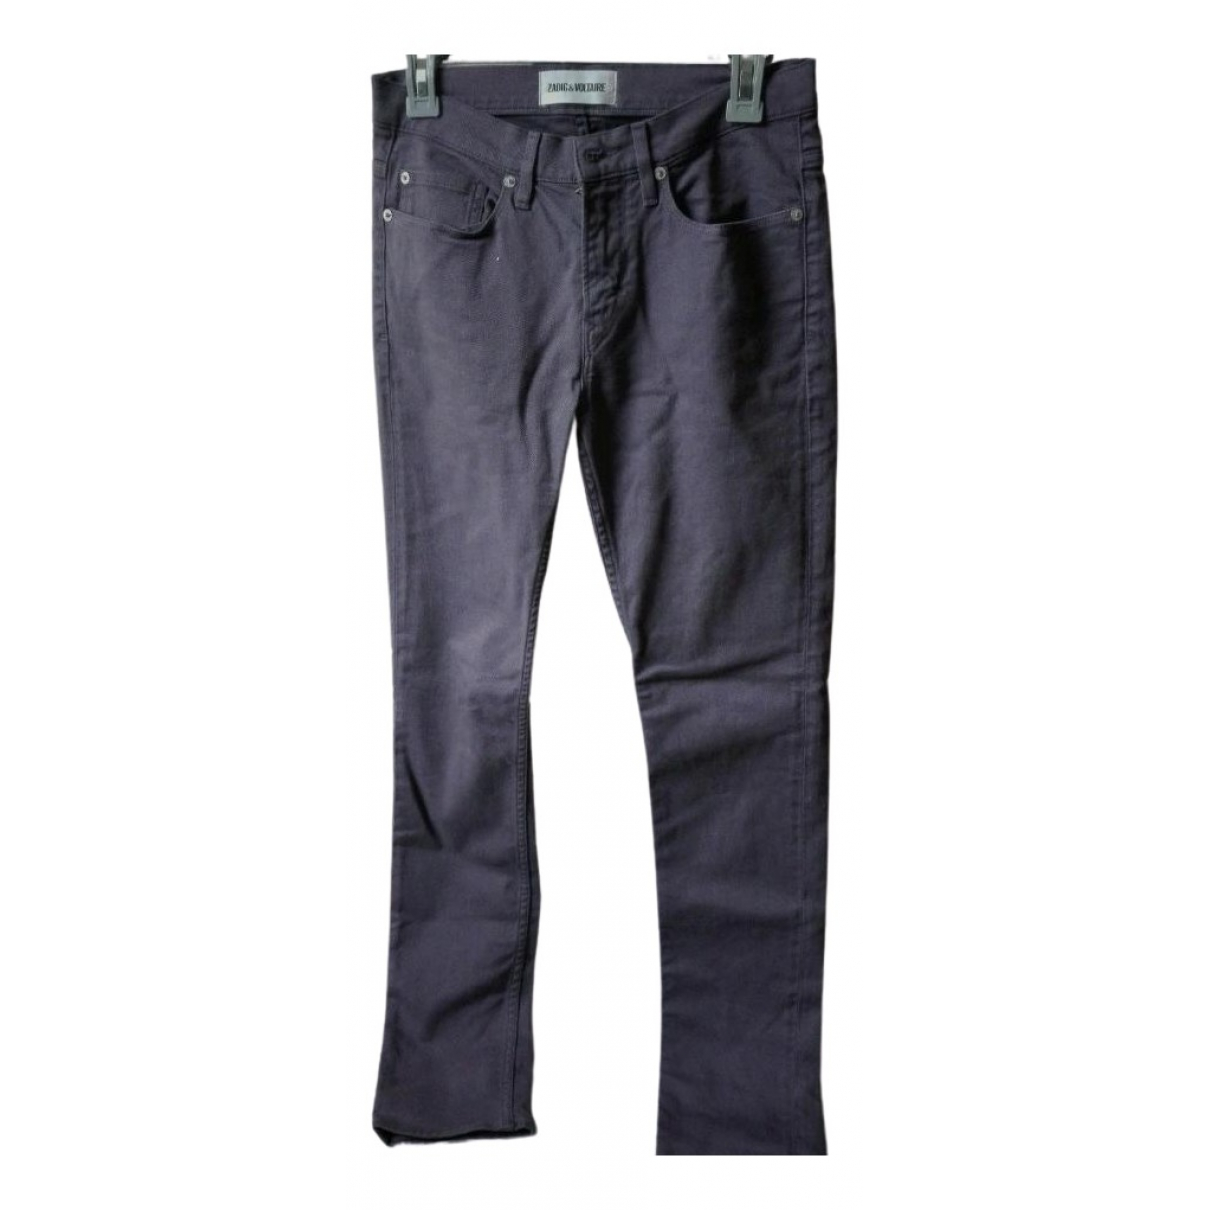 Zadig & Voltaire \N Jeans in  Lila Denim - Jeans